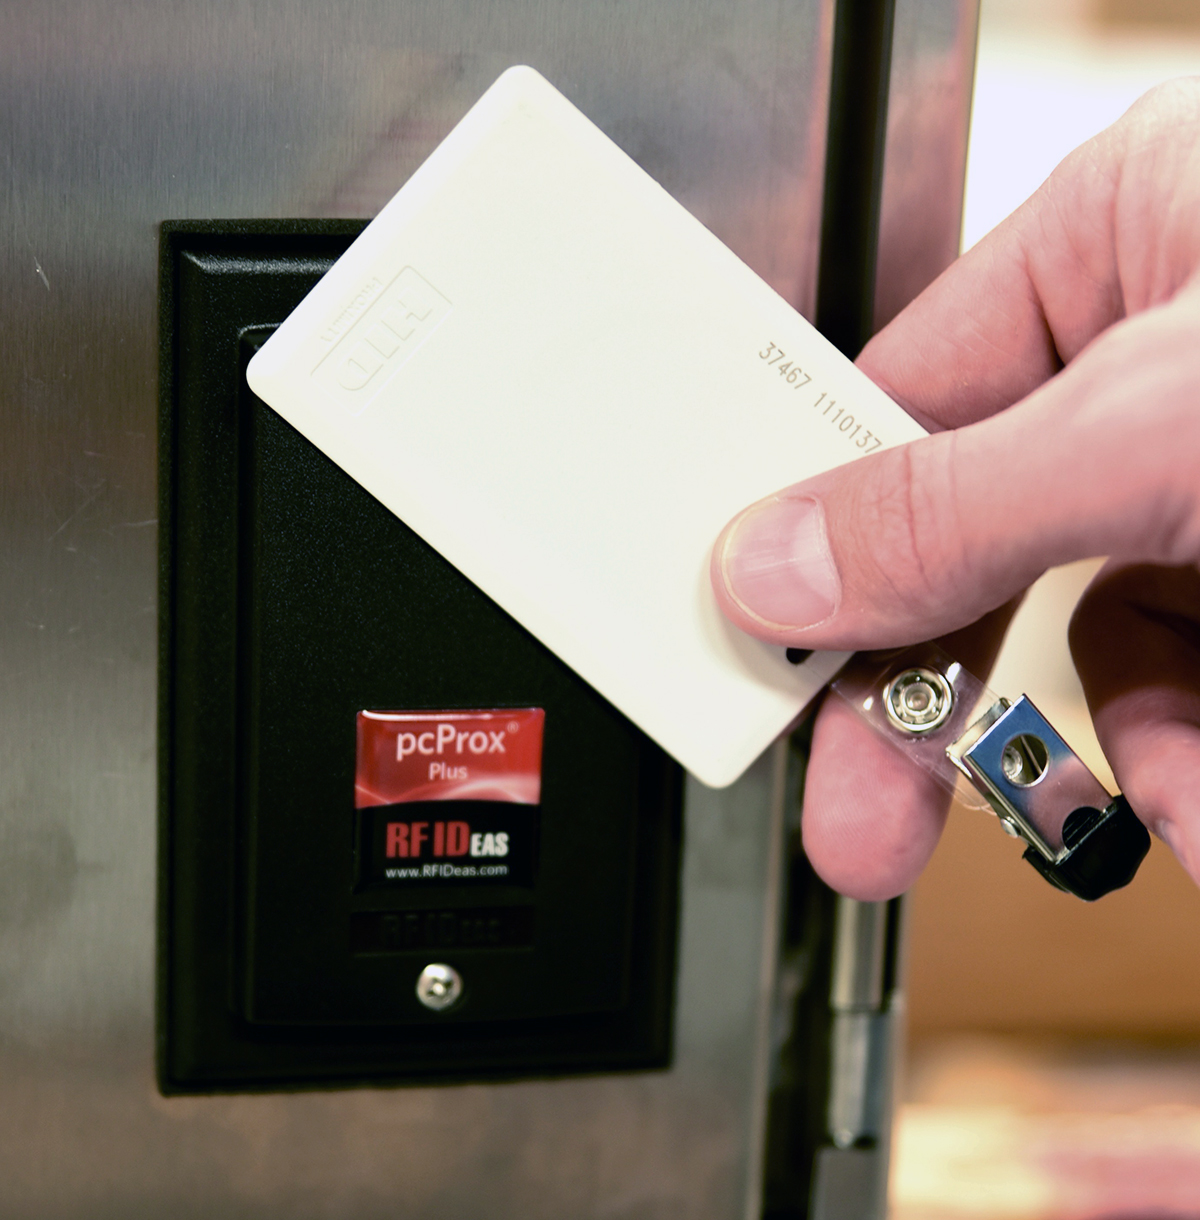 Operator using RFID tag to quickly login